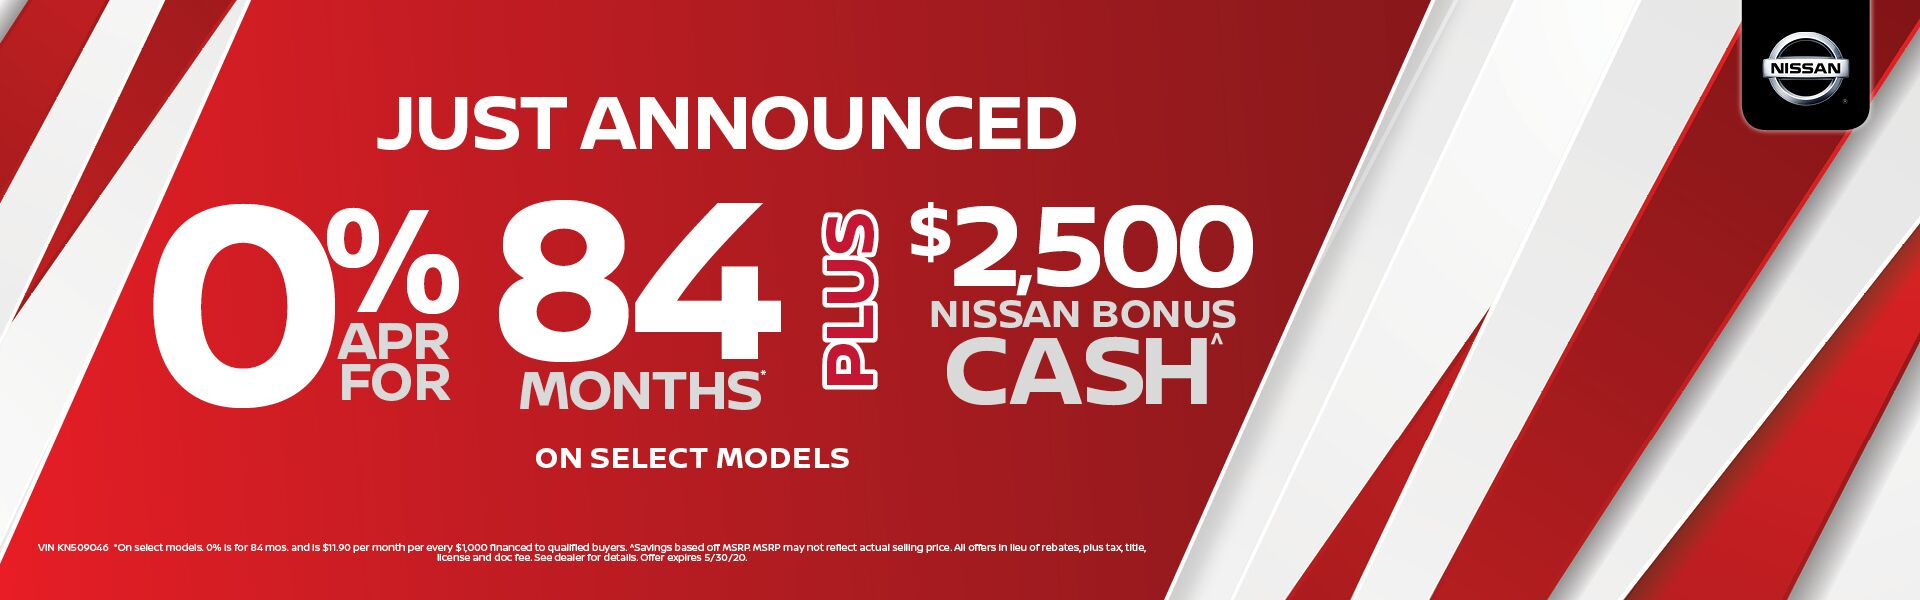 0% APR x 84 months on Select Models